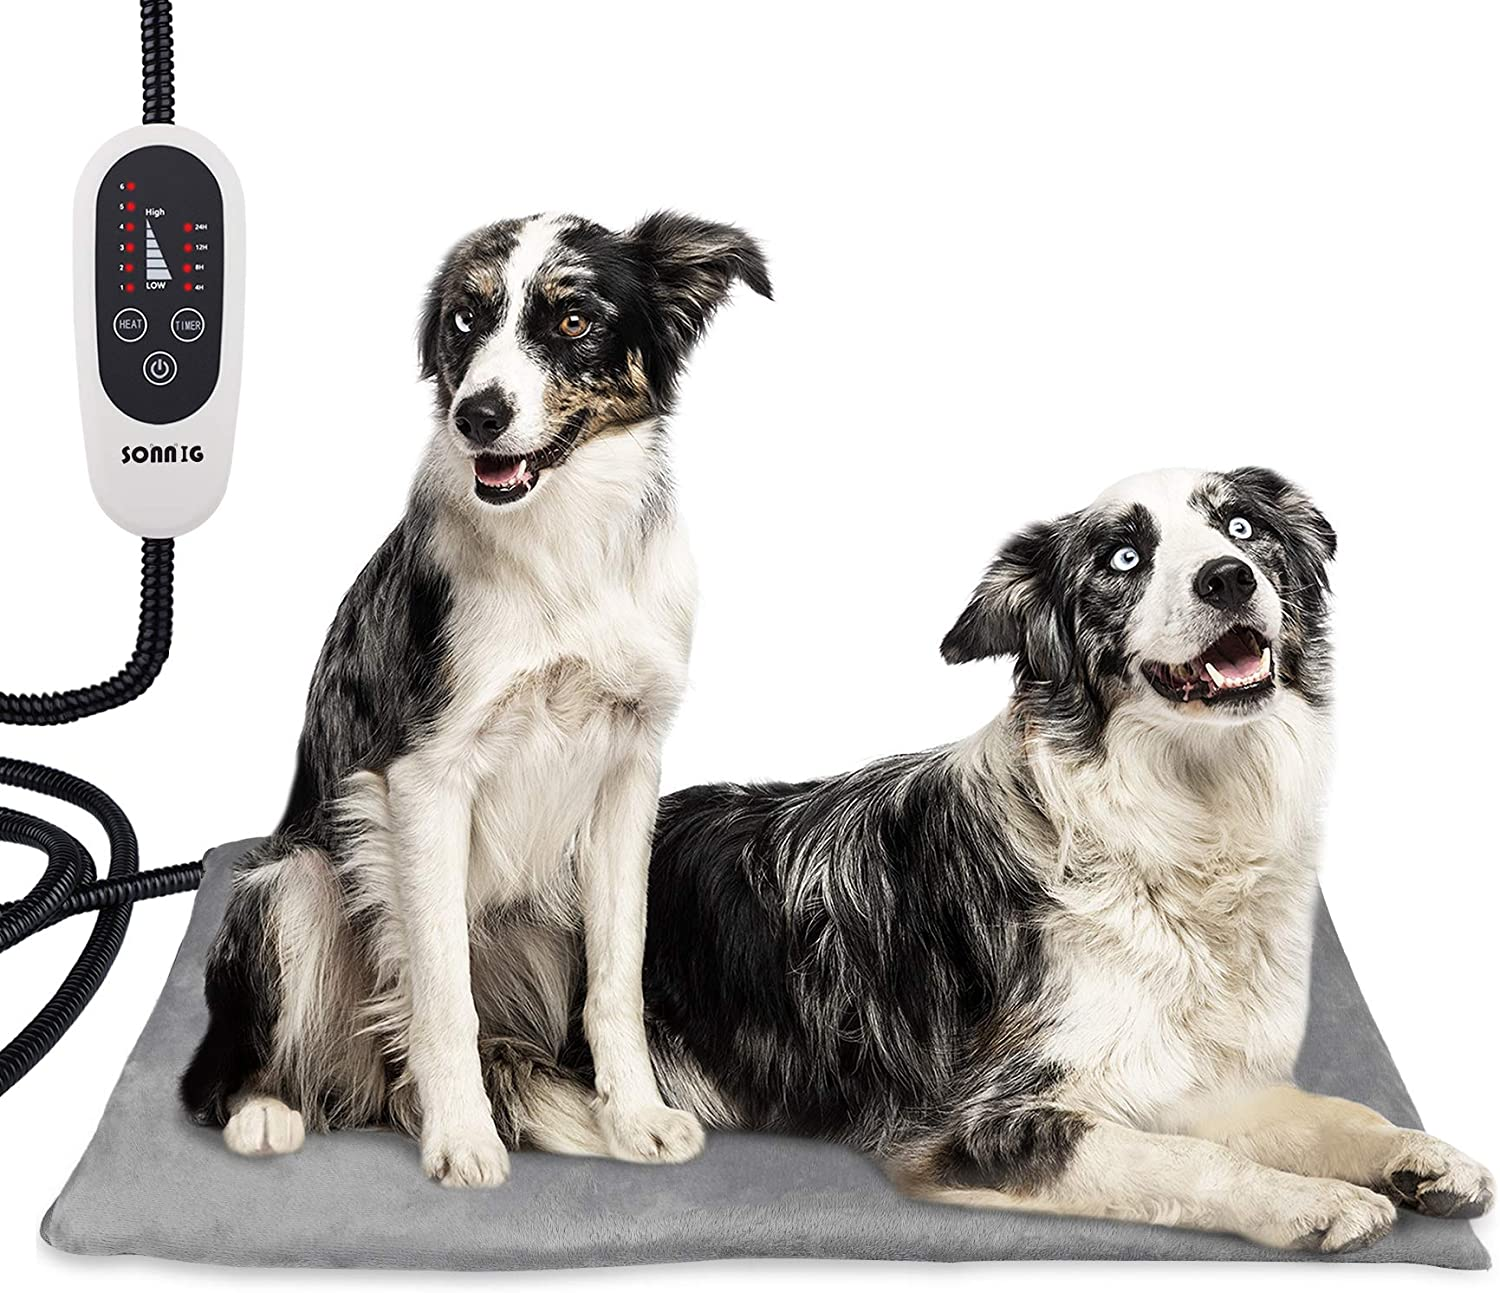 Sonning heating pad for dog with joint pain